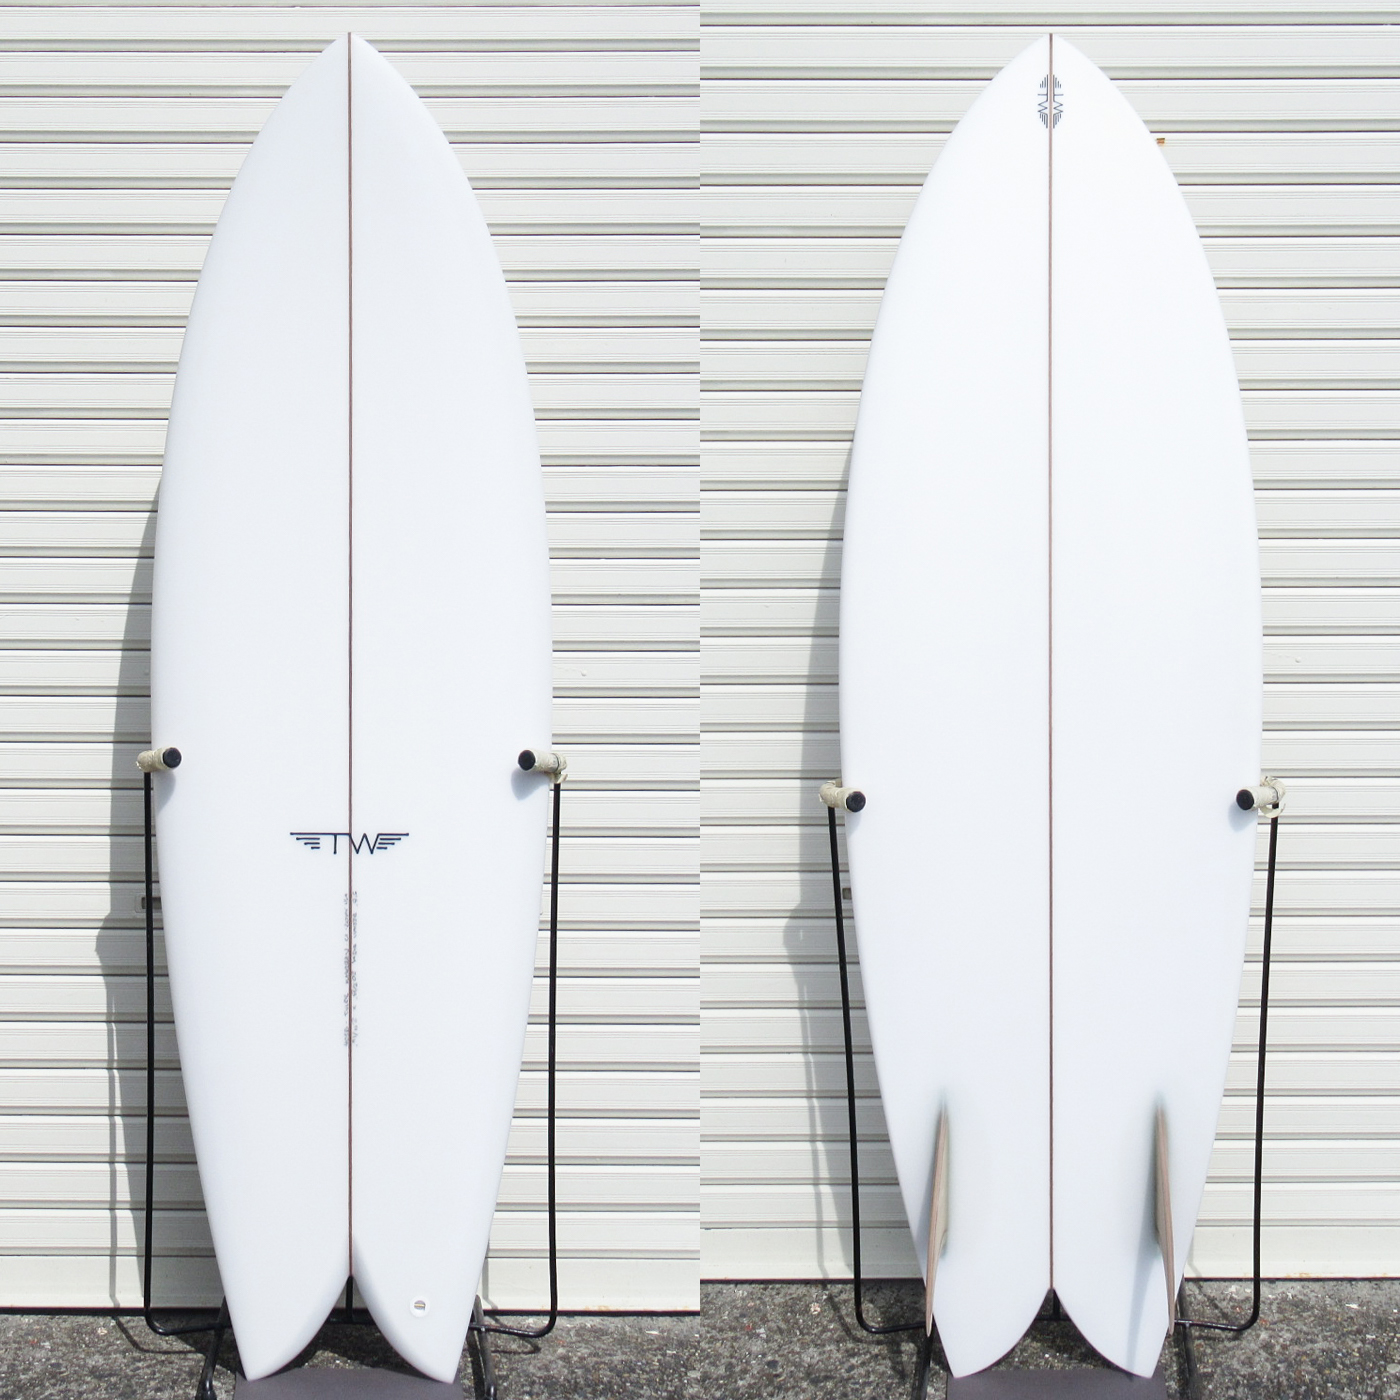 "【新品ストック】TYLER WARREN / DREAM FISH 5'8"" x 20-5/8"" x 2-9/16"" No.20200303_1"